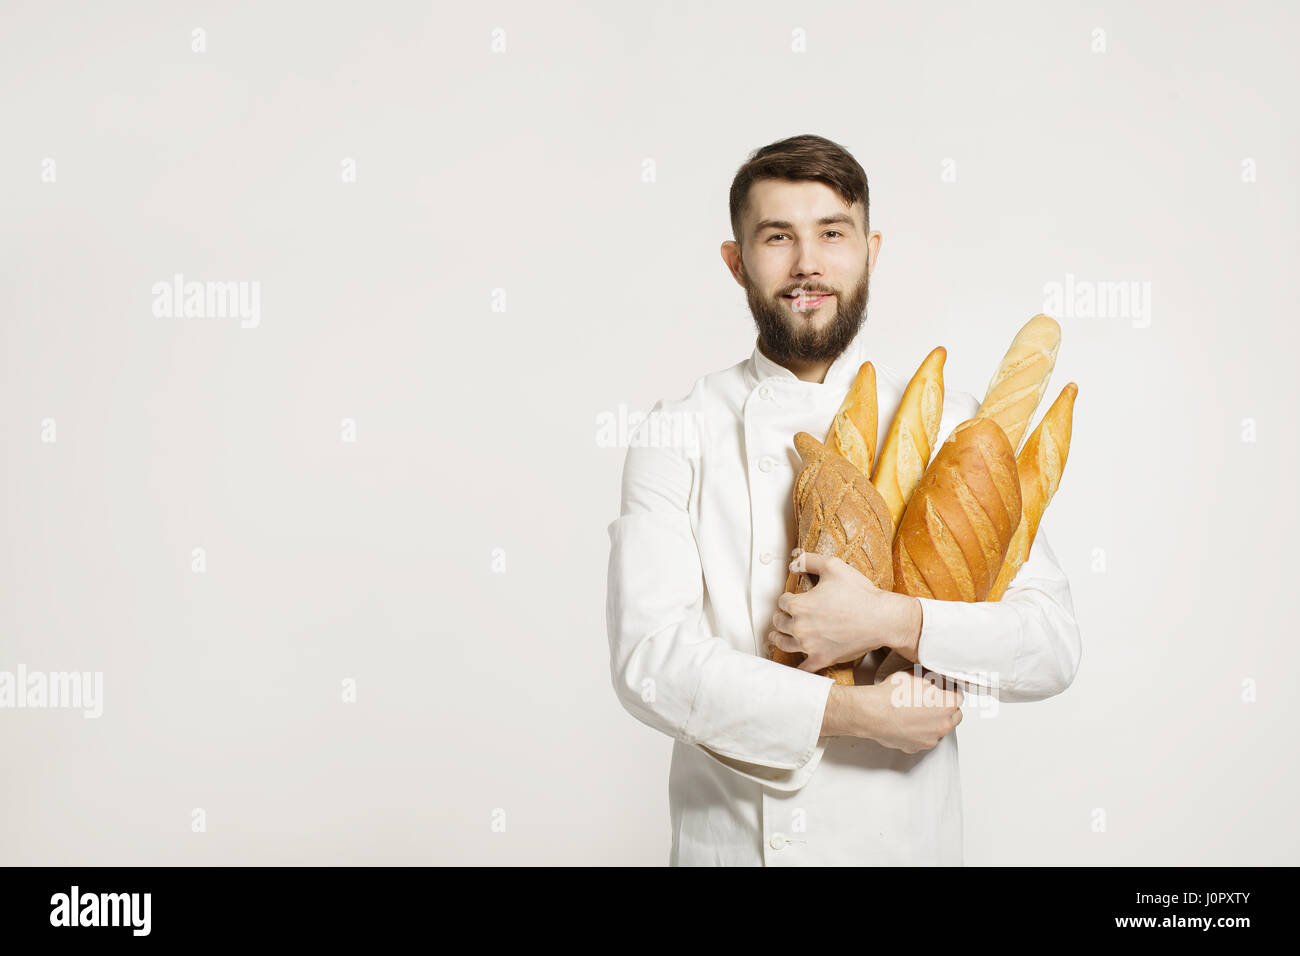 Handsome baker in uniform holding baguettes with bread shelves on the white background. Handsome man holding warm - Stock Image